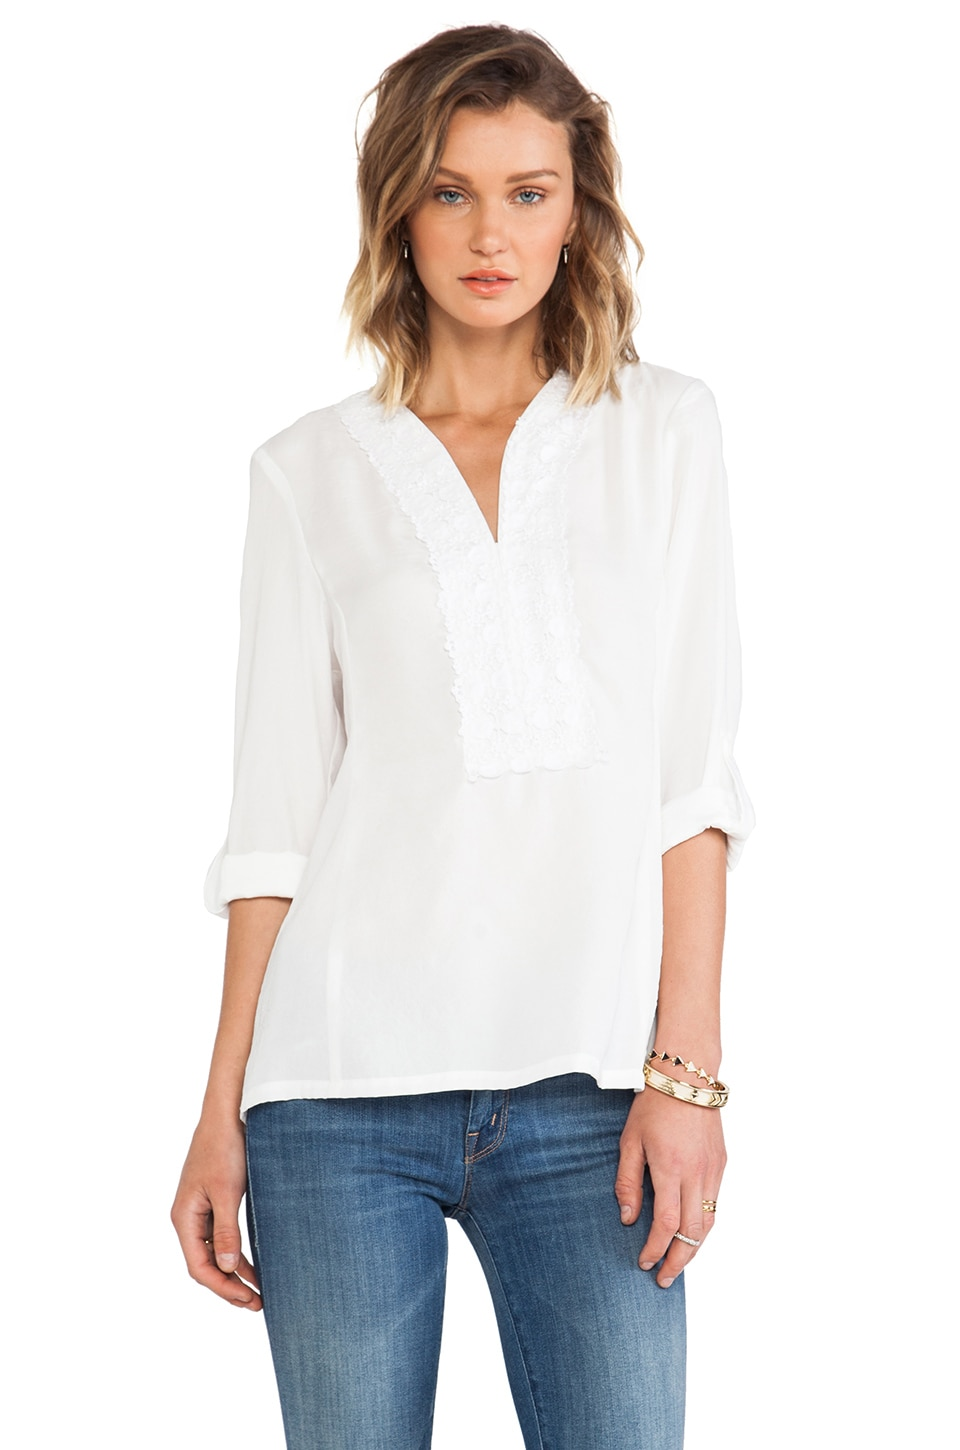 Nanette Lepore Jardin Blouse in White